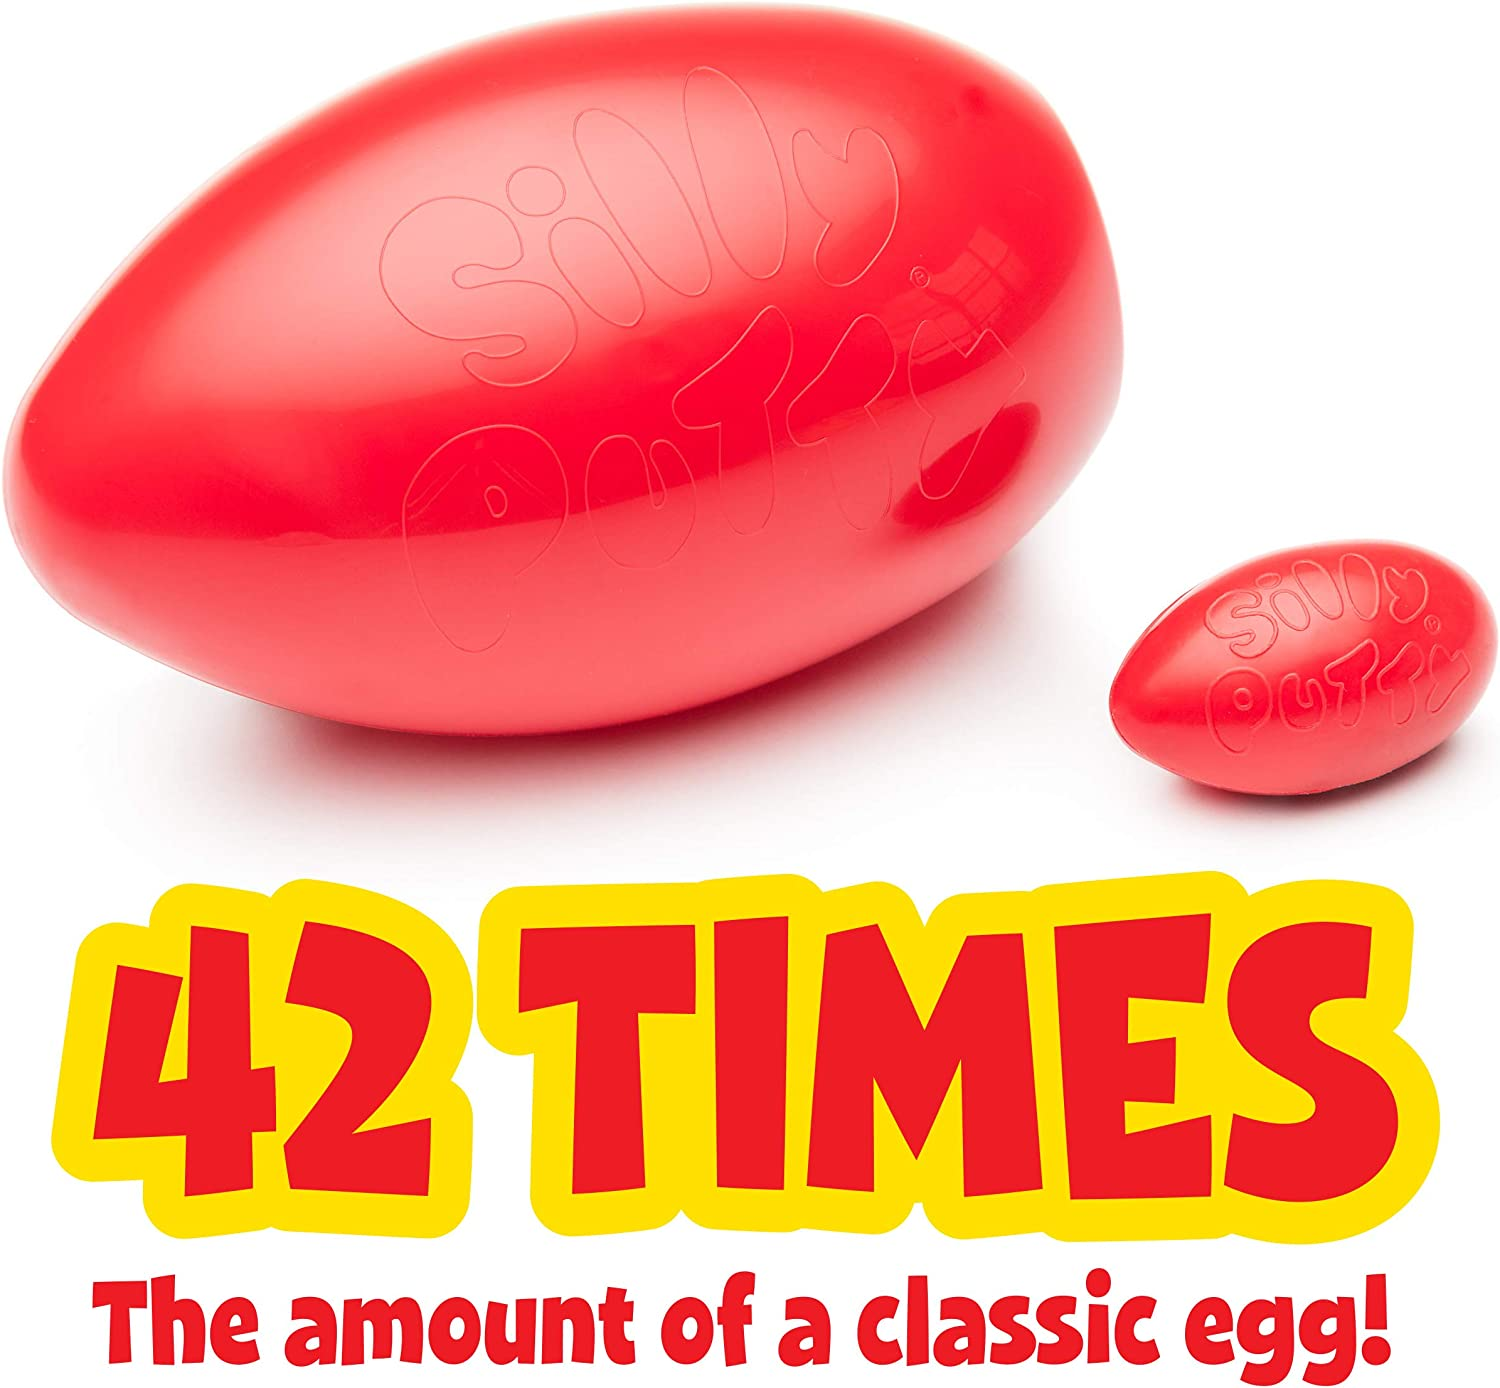 Fidget Toy Gift for Kids Crayola Silly Putty Giant Red Egg 1Lb